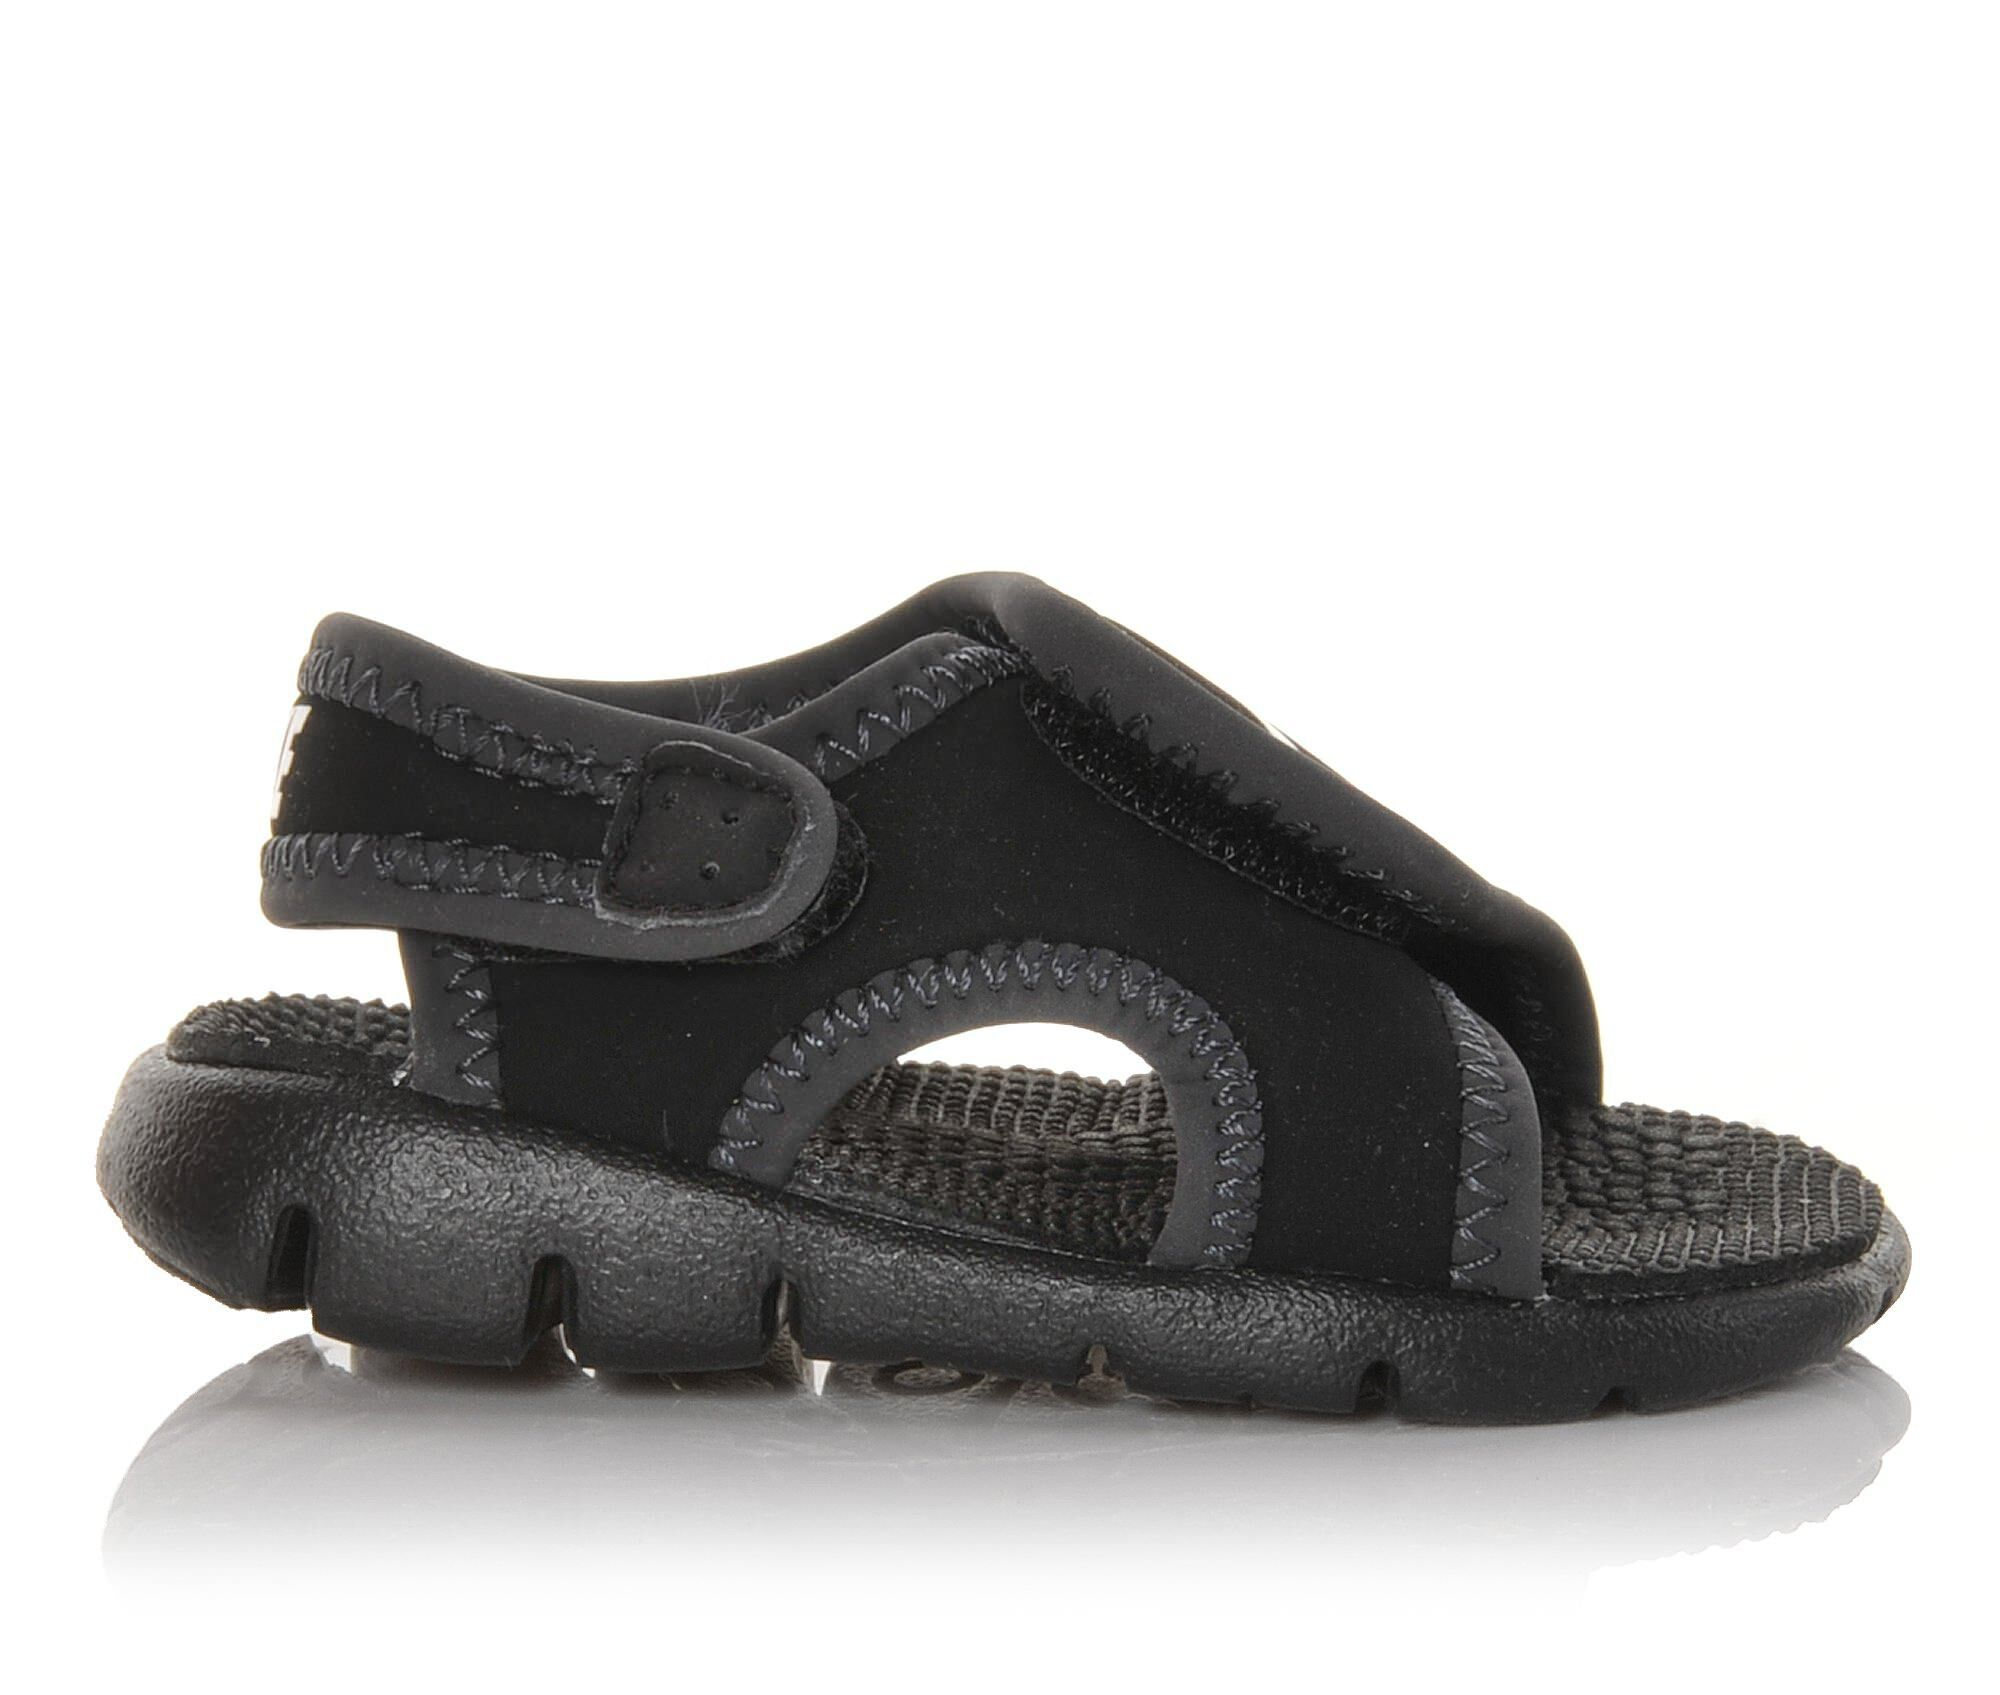 b4cdcb2dfcec ... coupon code for nike infant toddler sunray adjust 4 sandals. previous  87777 1e14f